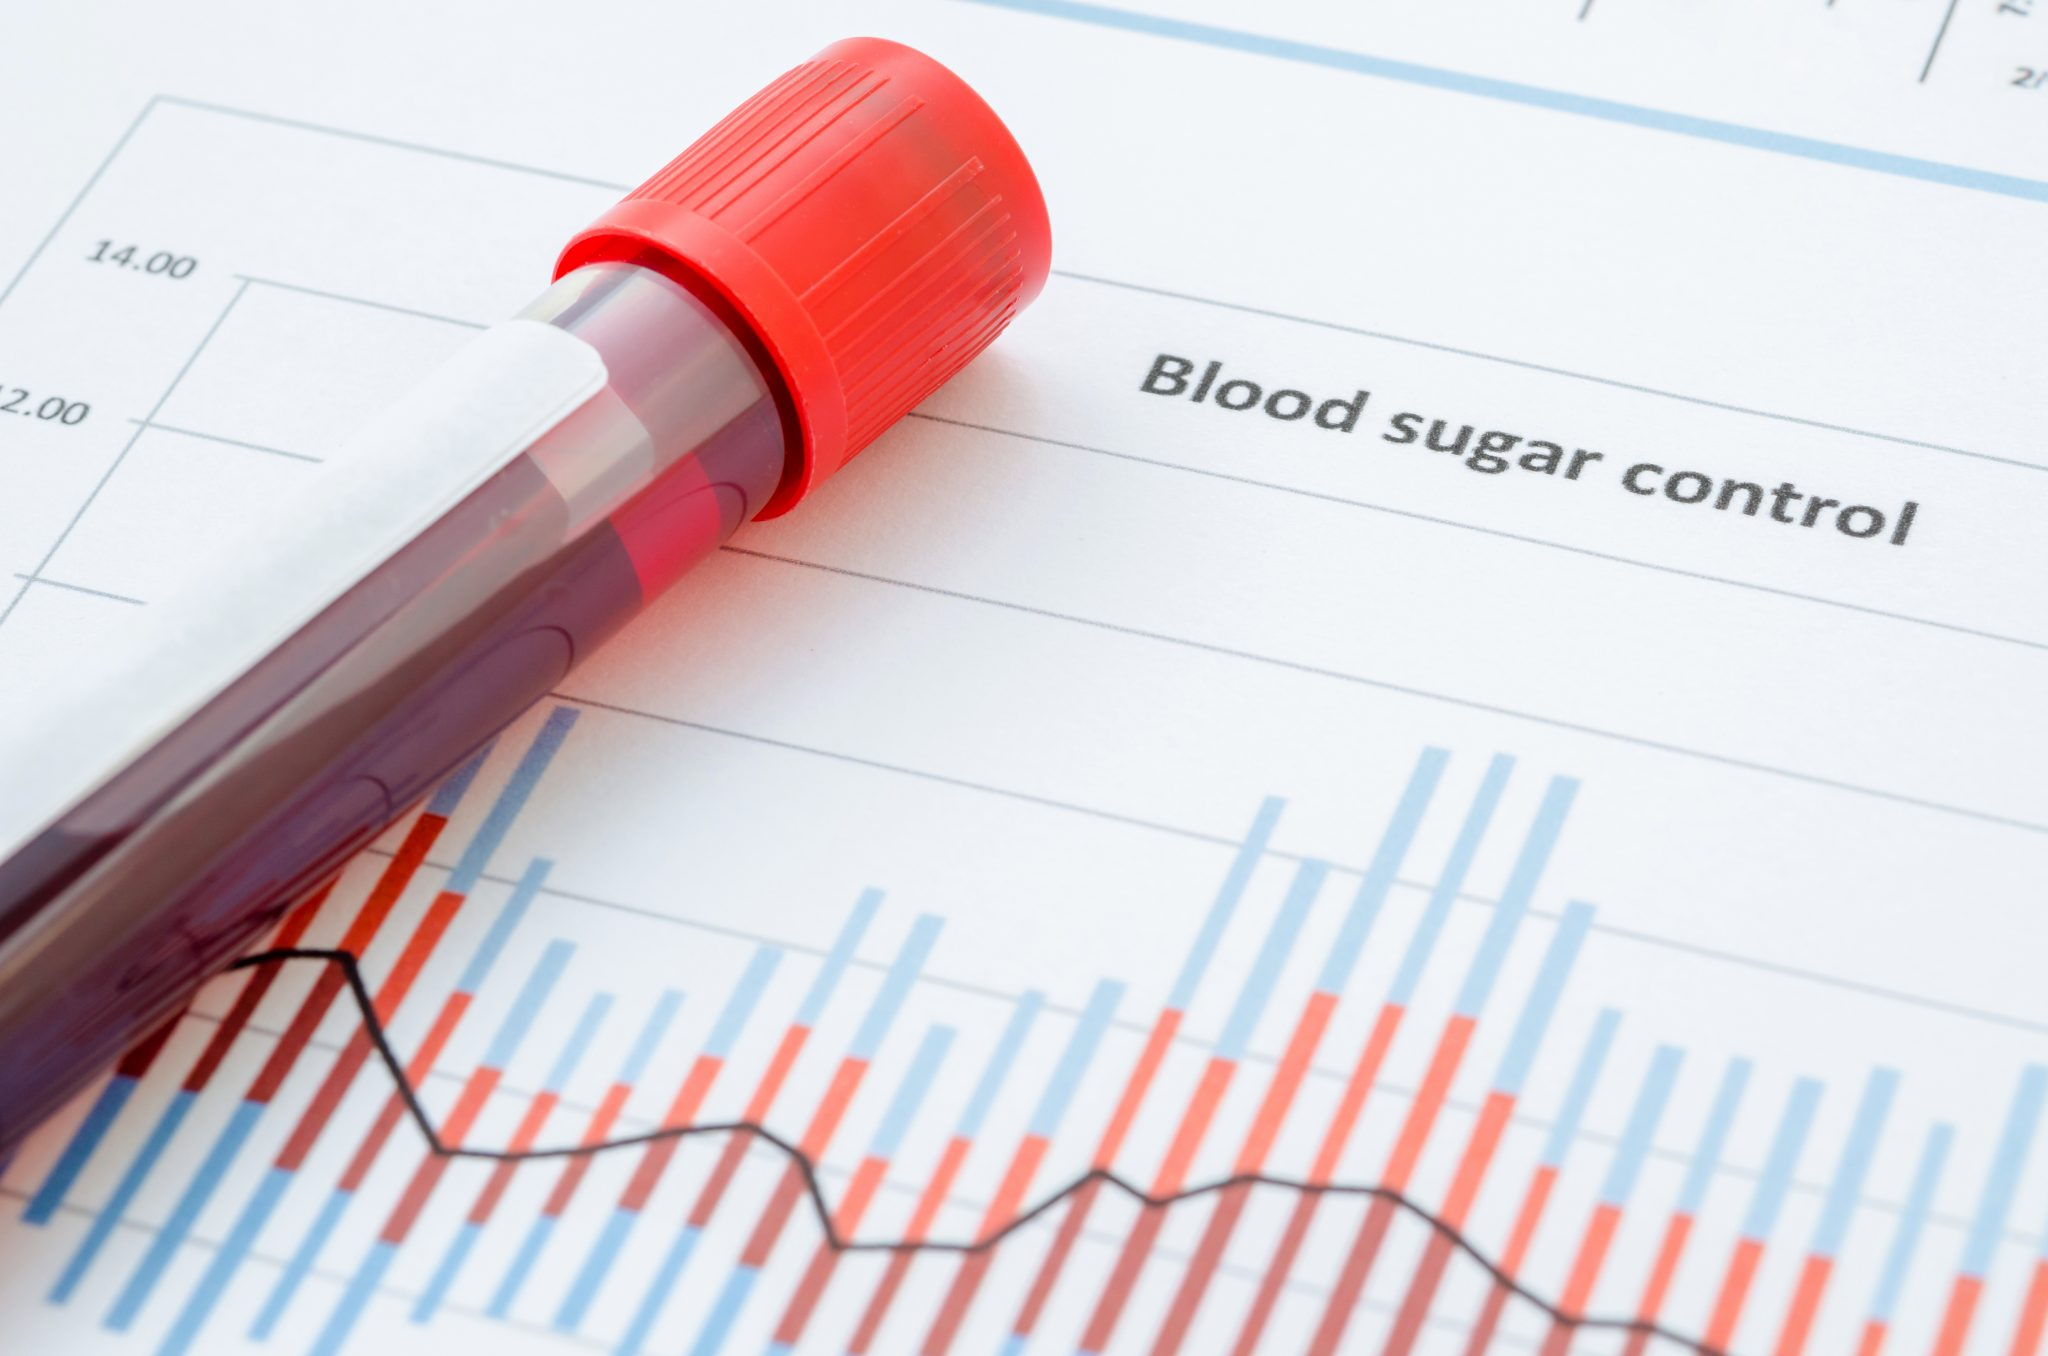 New Hormone Involved In Glucose Control Discovered Diabetes Daily